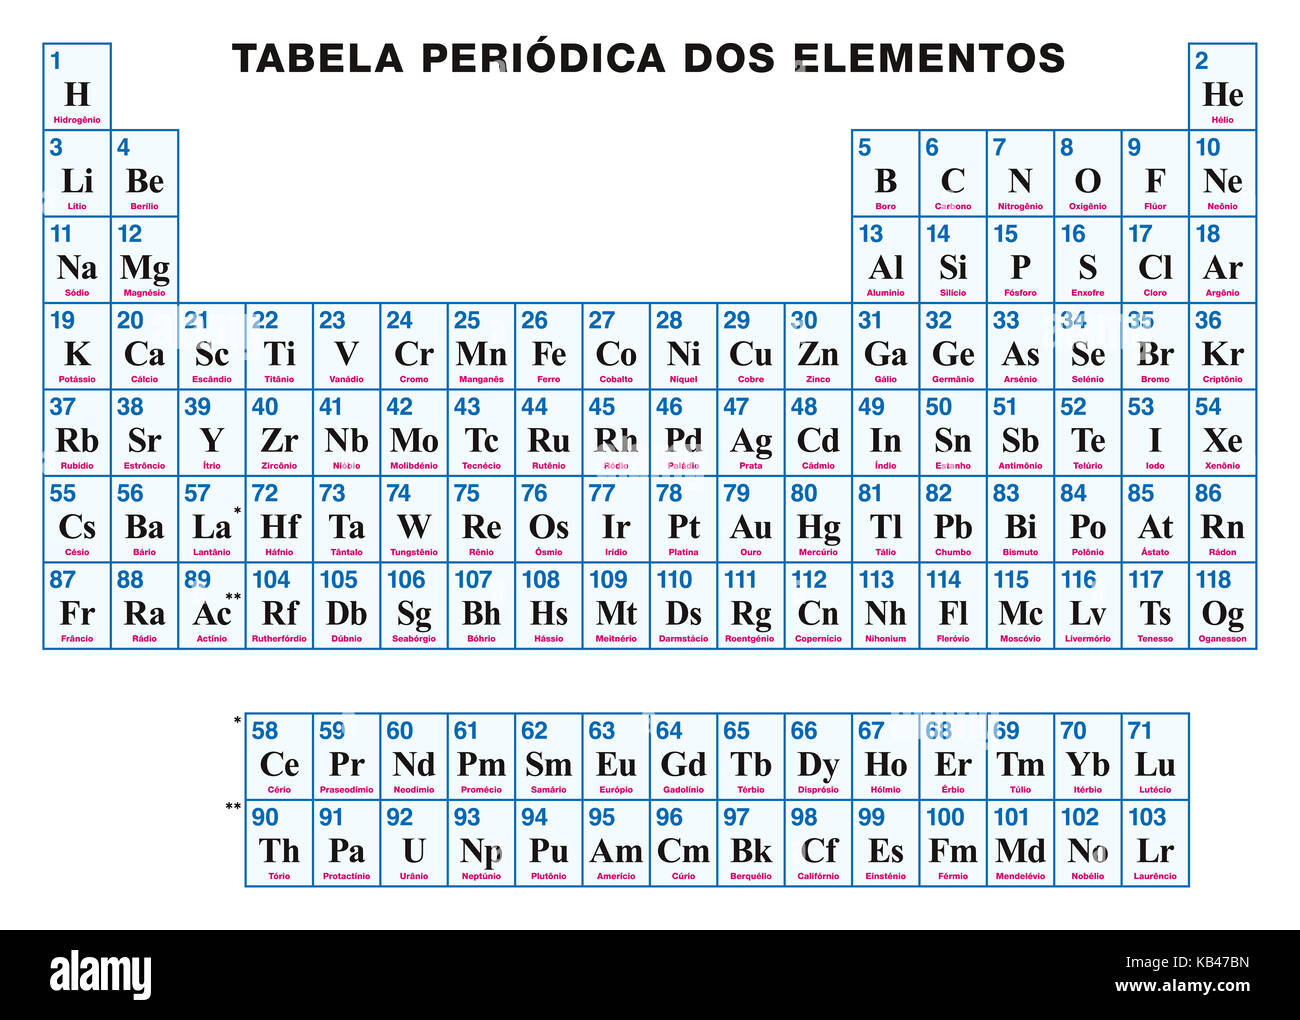 Periodic table of the elements portuguese tabular arrangement of periodic table of the elements portuguese tabular arrangement of chemical elements with atomic numbers symbols and names 118 confirmed elements urtaz Images